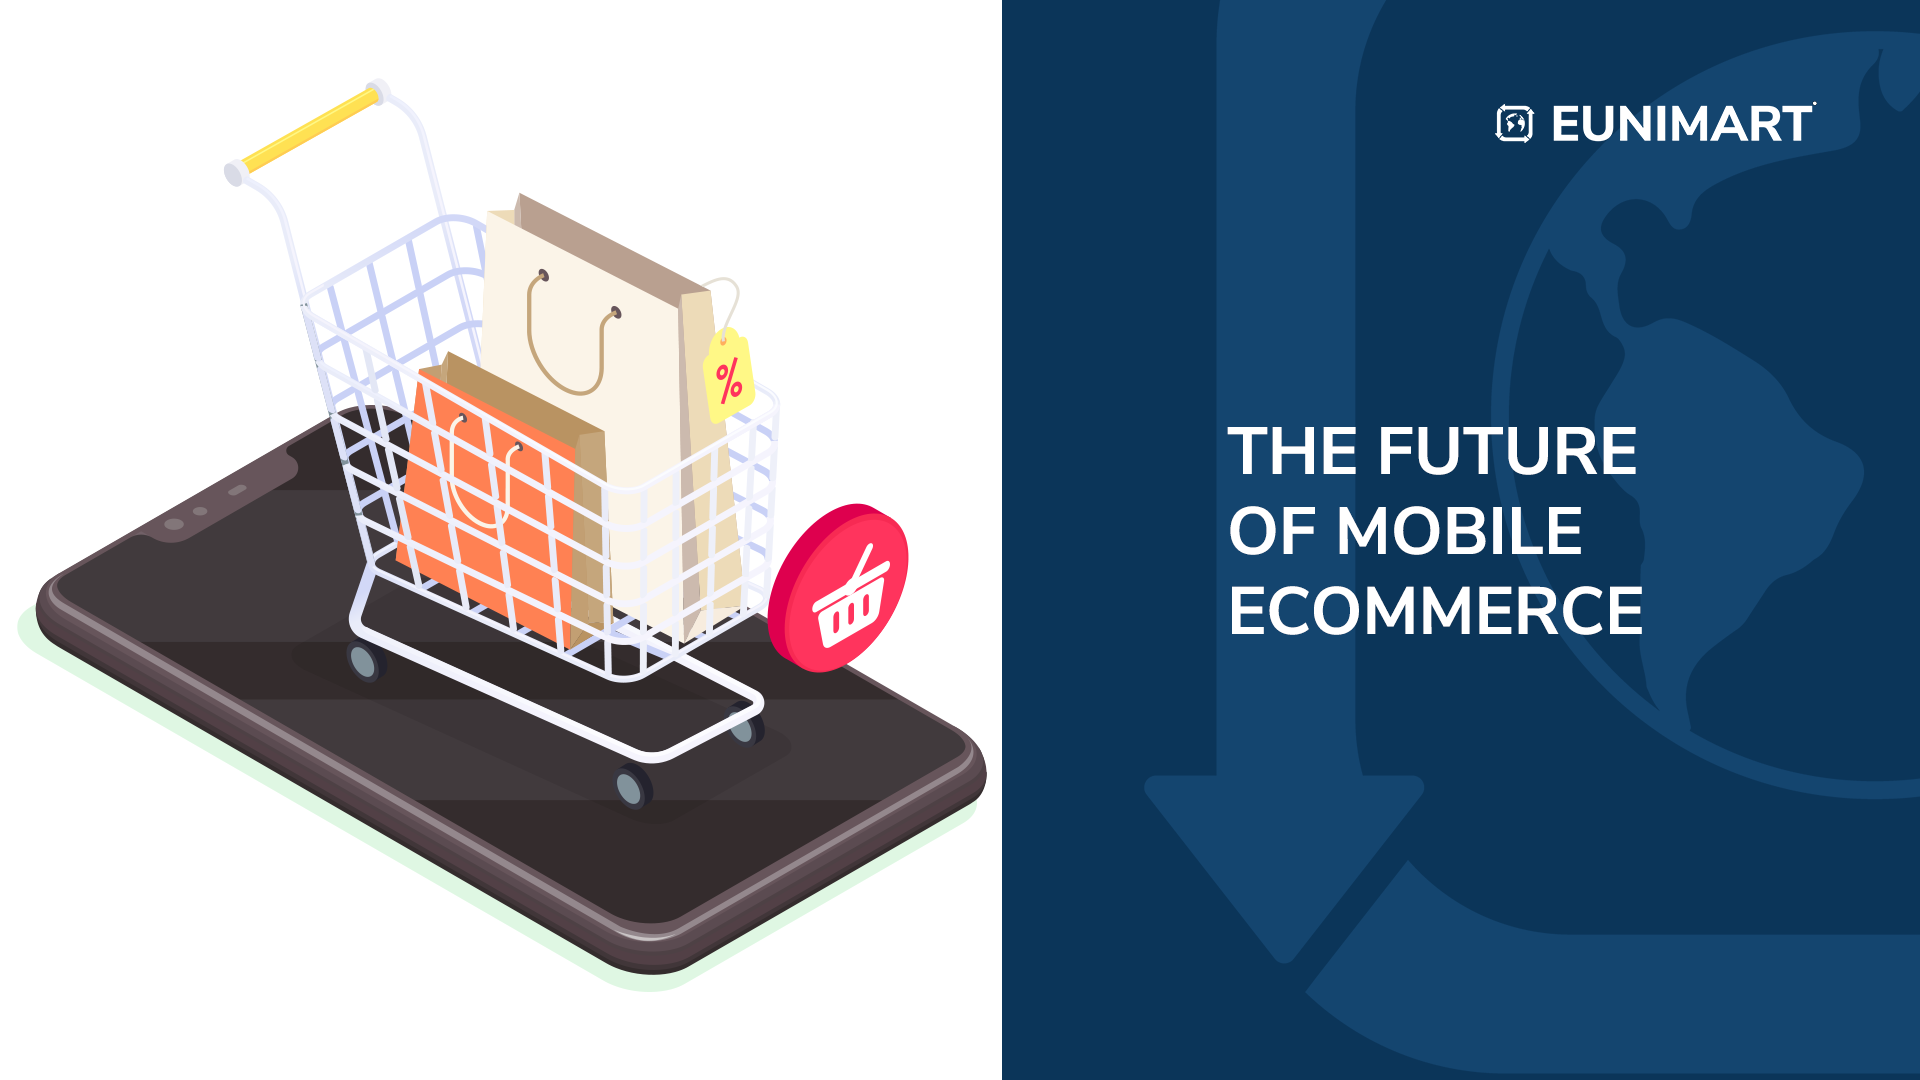 The future of mobile ecommerce